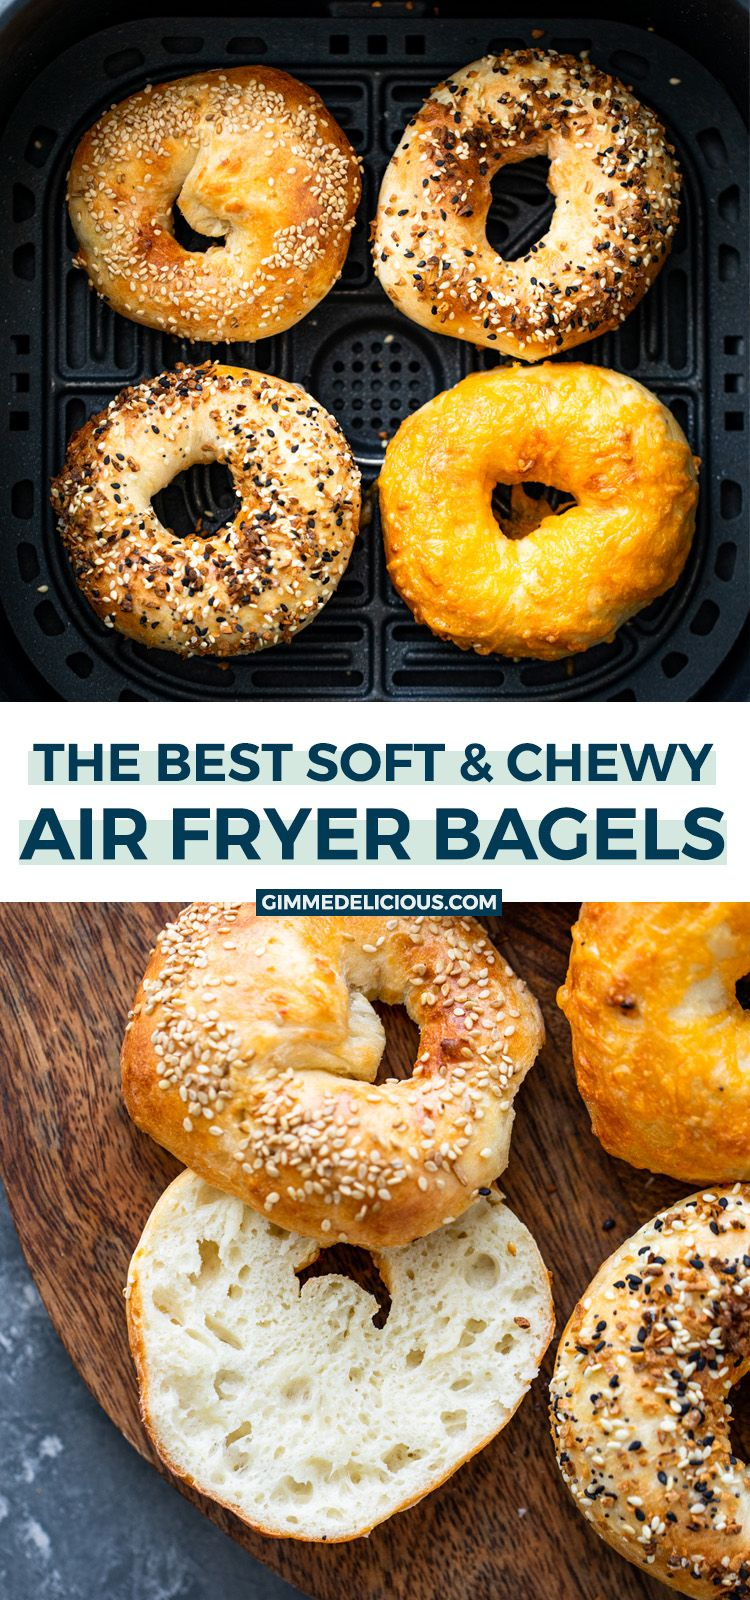 15 Minute Air Fryer Bagels Gimme Delicious in 2020 Air